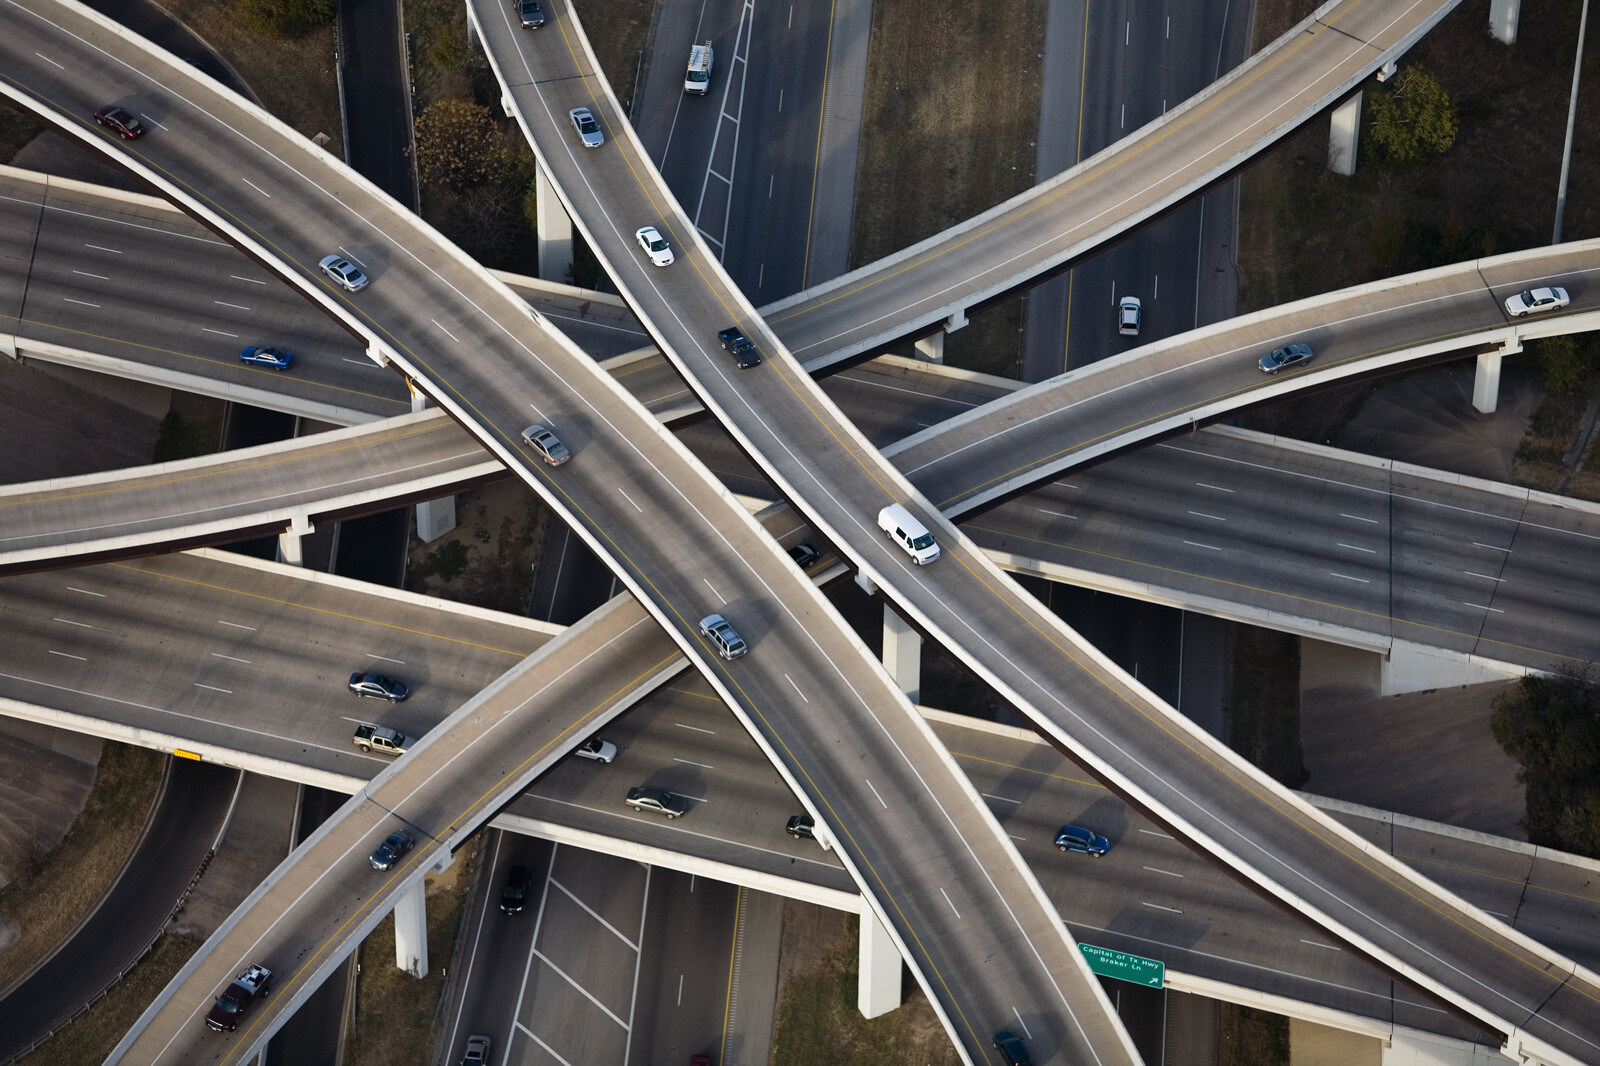 Inverted Cloverleaf interchange RT1 and RT183, Austin, Texas von Alex Maclean